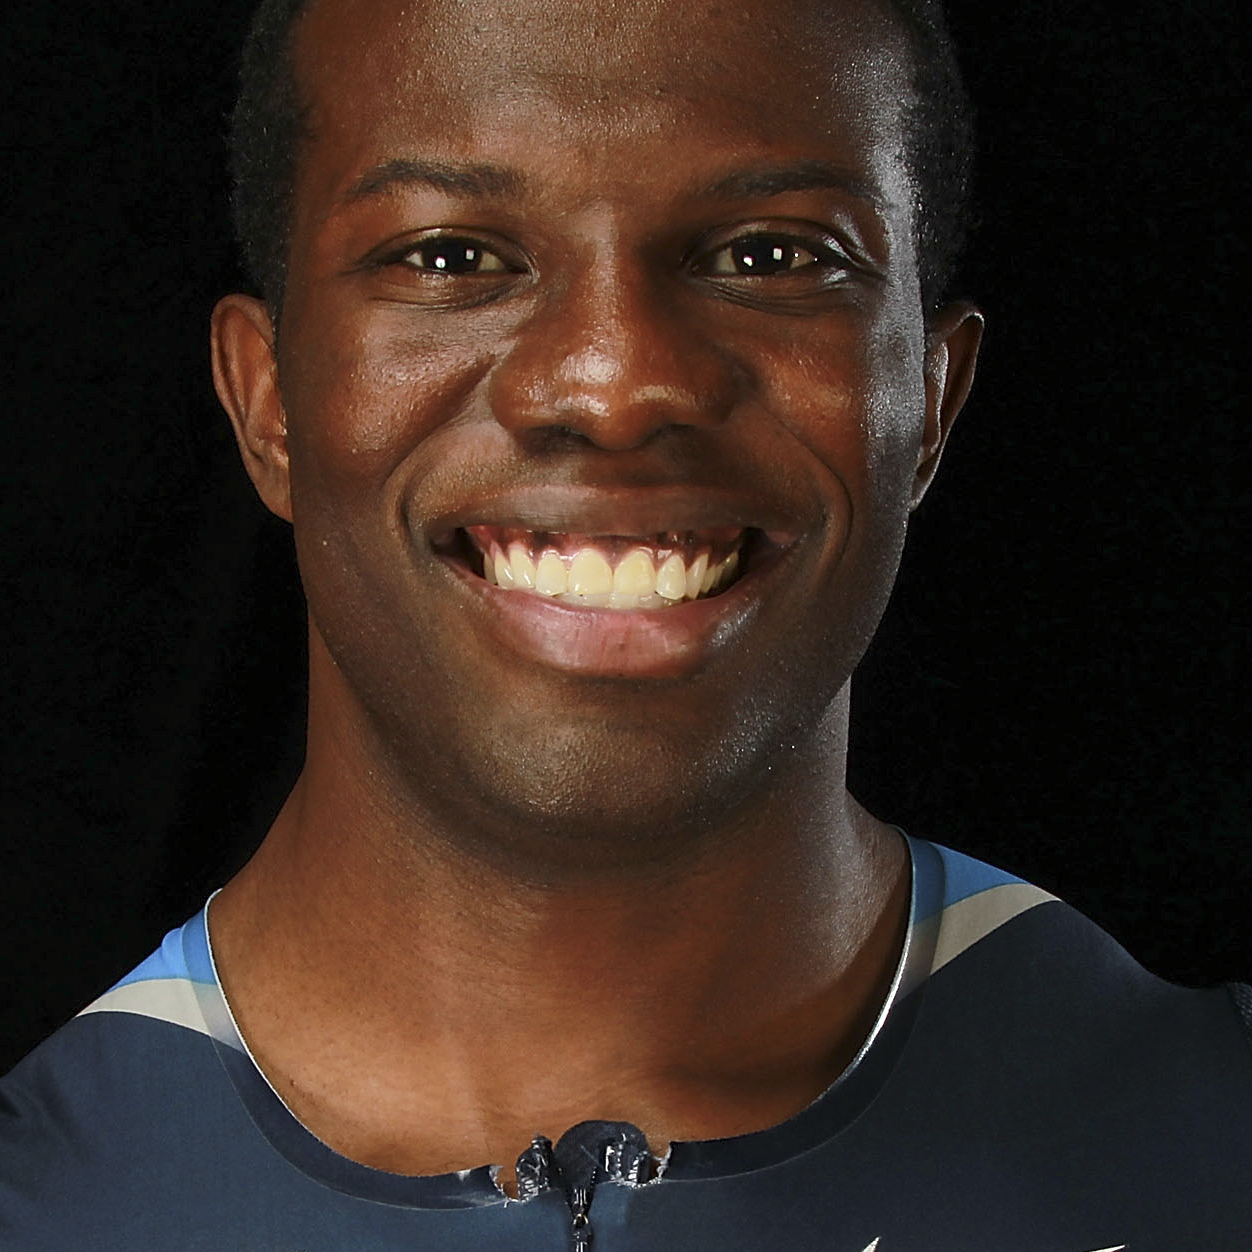 Jerome Singleton, a single amputee, will challenge Oscar Pistorius in the Paralympic 100-meter race.